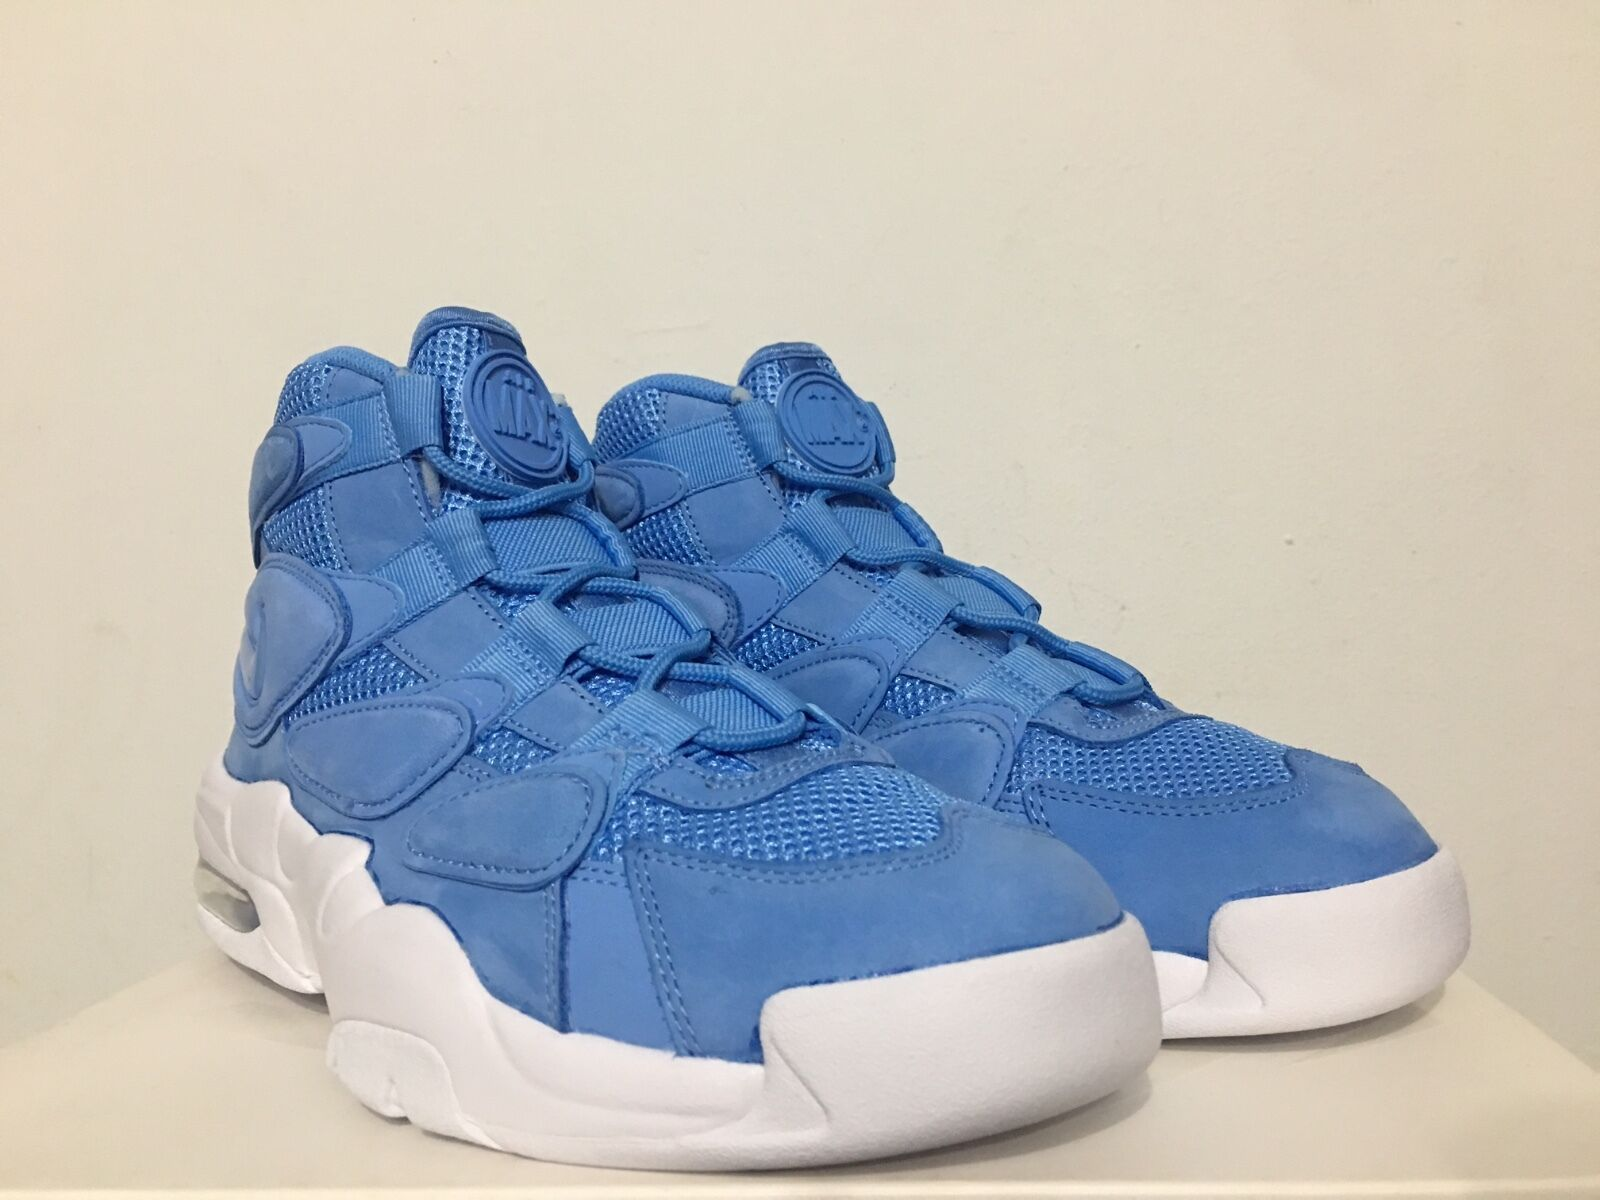 separation shoes 93120 925c5 Nike Air Max 2 Uptempo 95 AS QS Blue White Men Basketball Shoes 922931-400  43   Acquisti Online su eBay